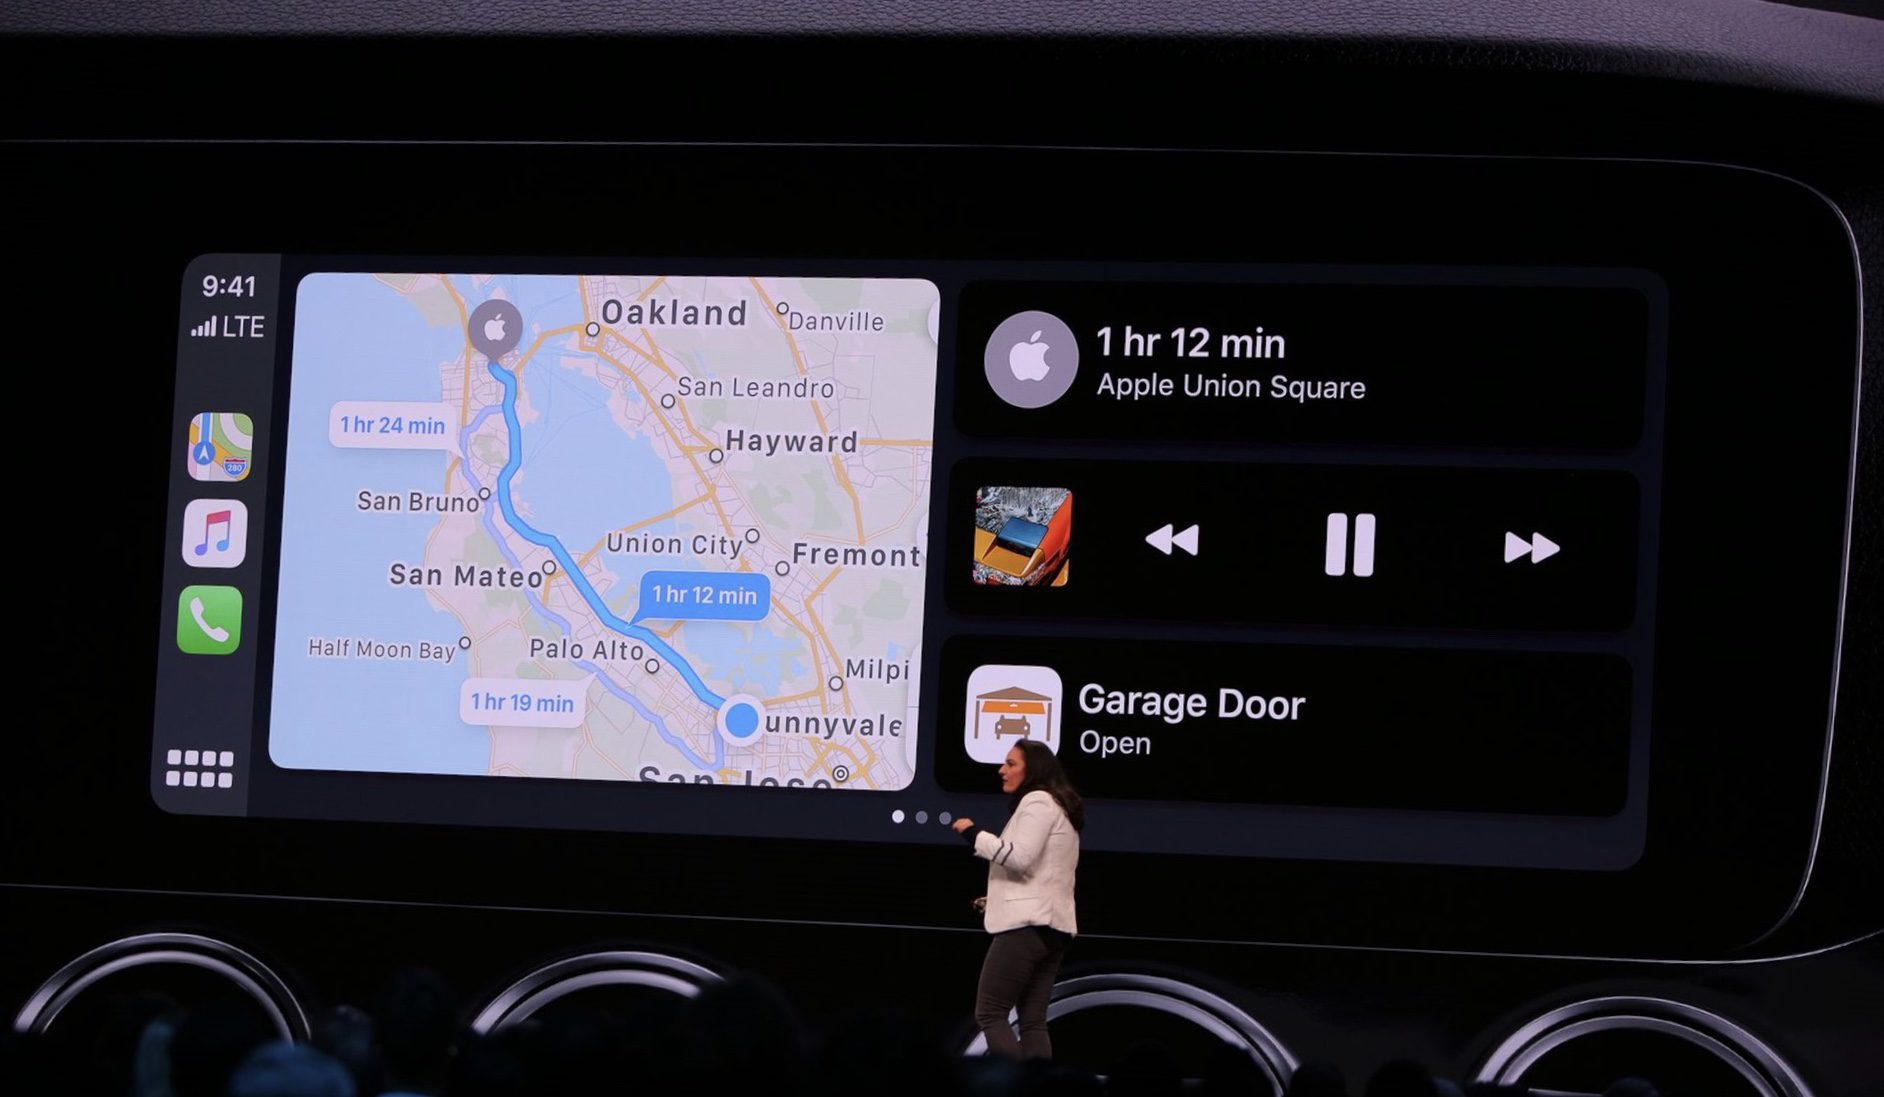 The new UI in CarPlay